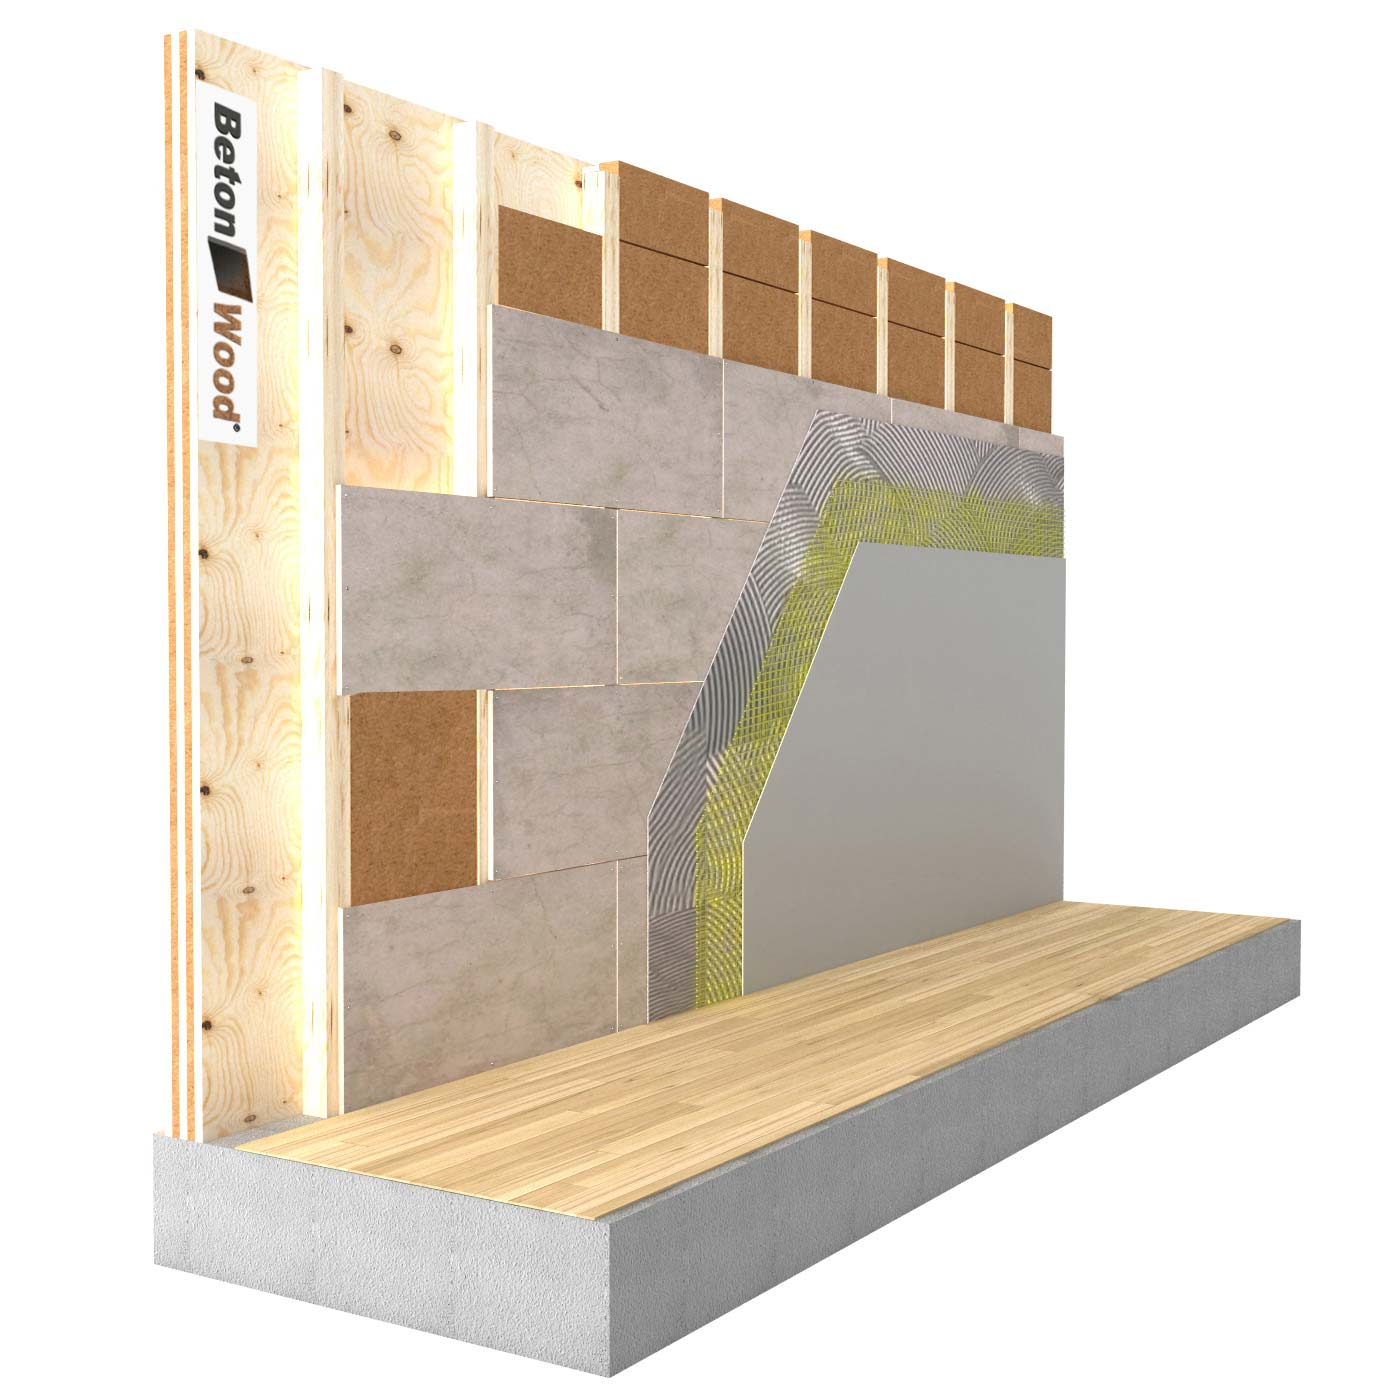 Internal insulation system with fiber wood FiberTherm and cement bonded particle board on X-Lam